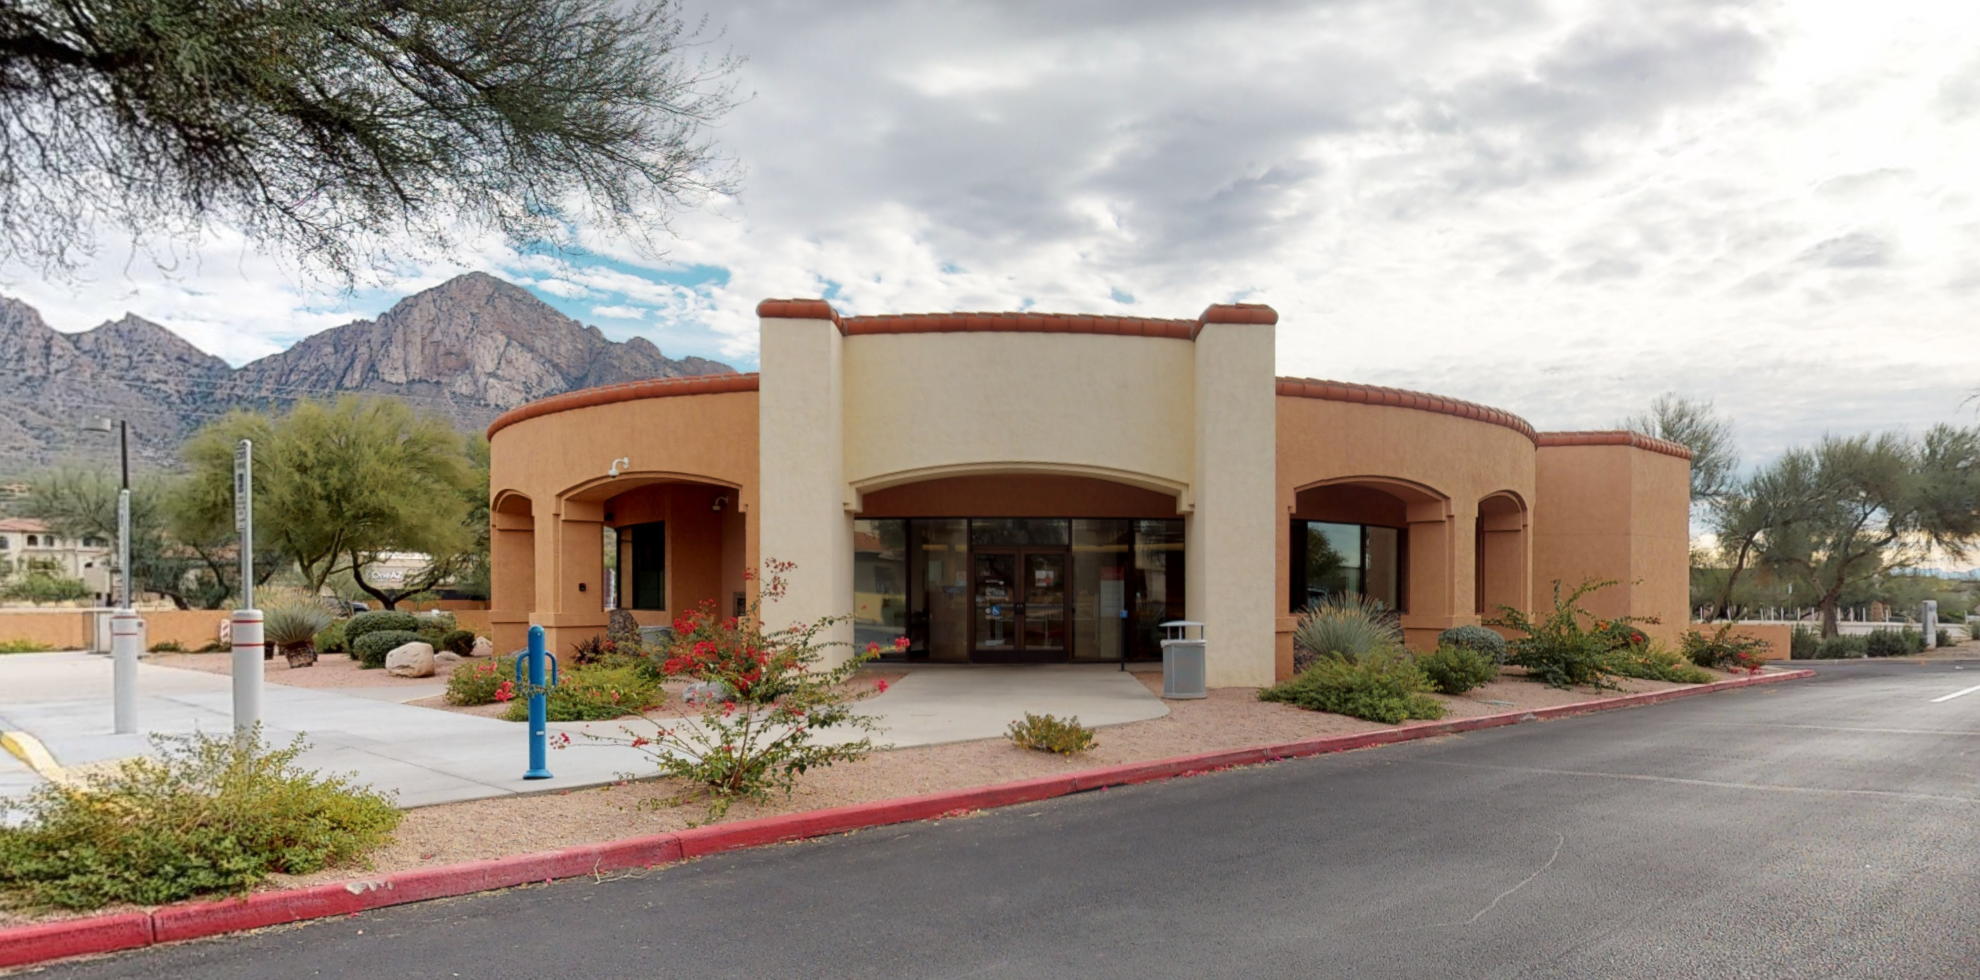 Bank of America financial center with drive-thru ATM | 10775 N Oracle Rd, Oro Valley, AZ 85737